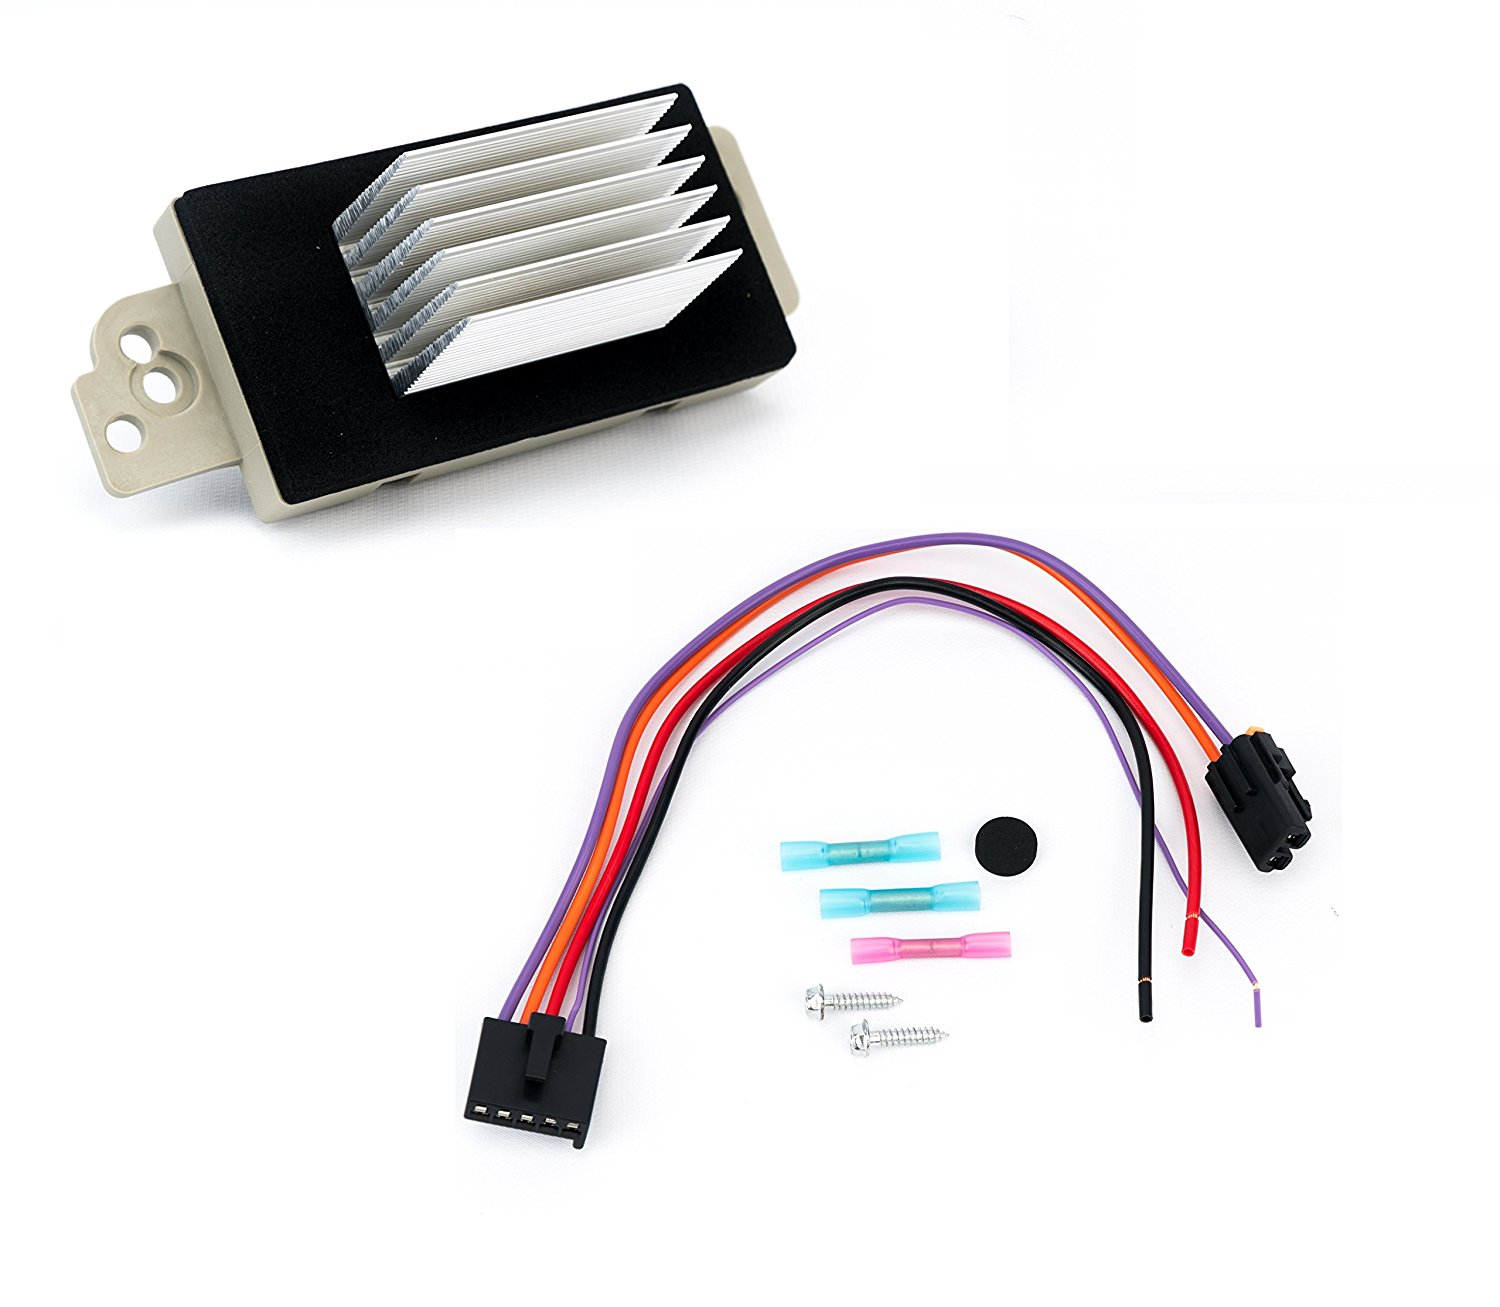 hight resolution of aa ignition productschevy and gmc blower motor resistor complete kit with harness replaces 15 81773 image